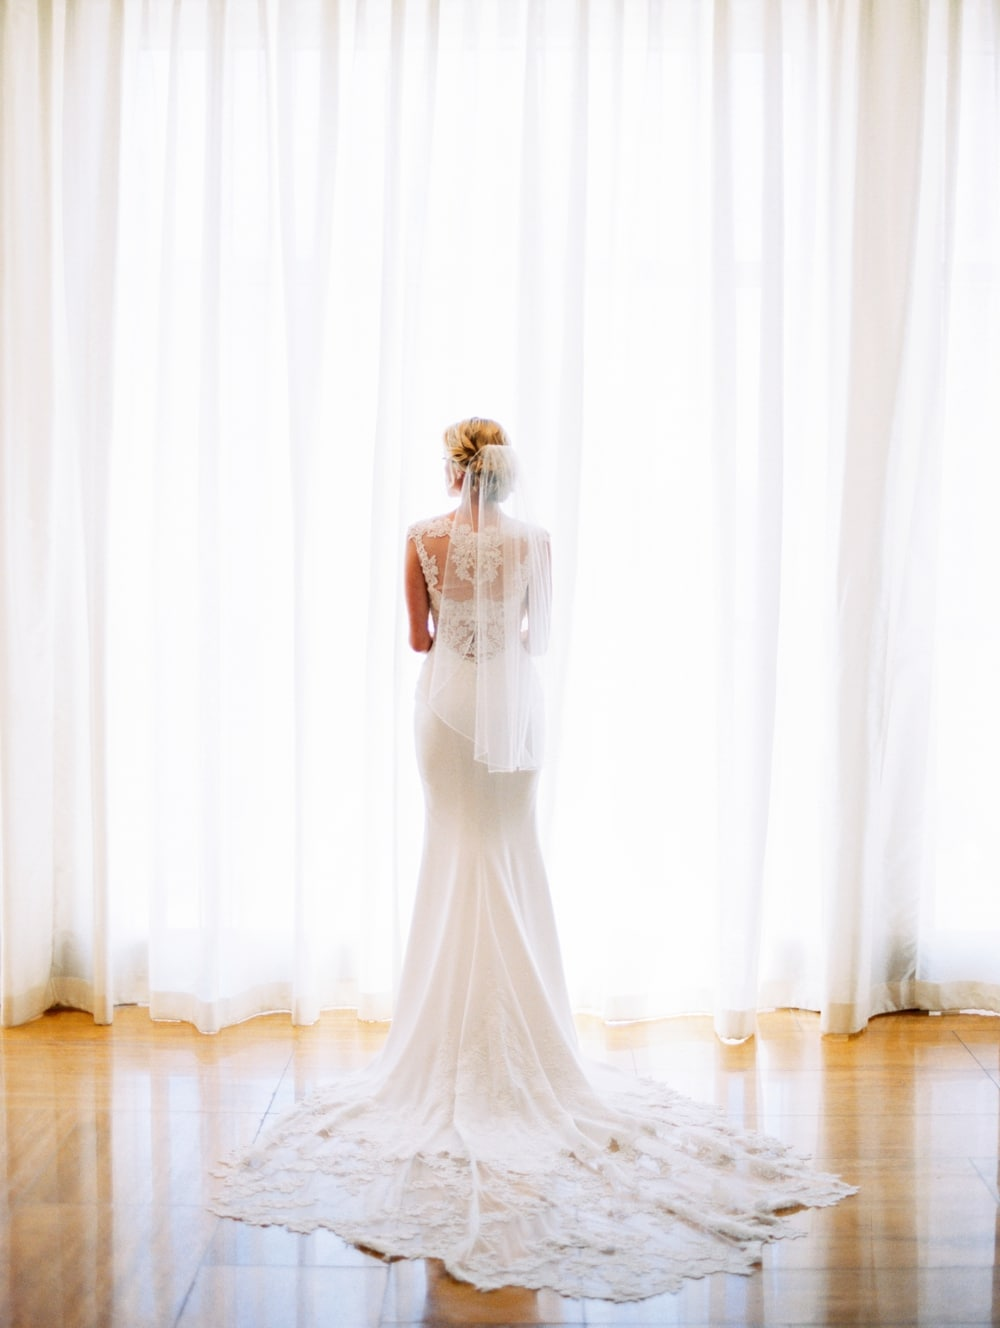 kristin-la-voie-photography-Chicago-Peninsula-Wedding-photographer-28